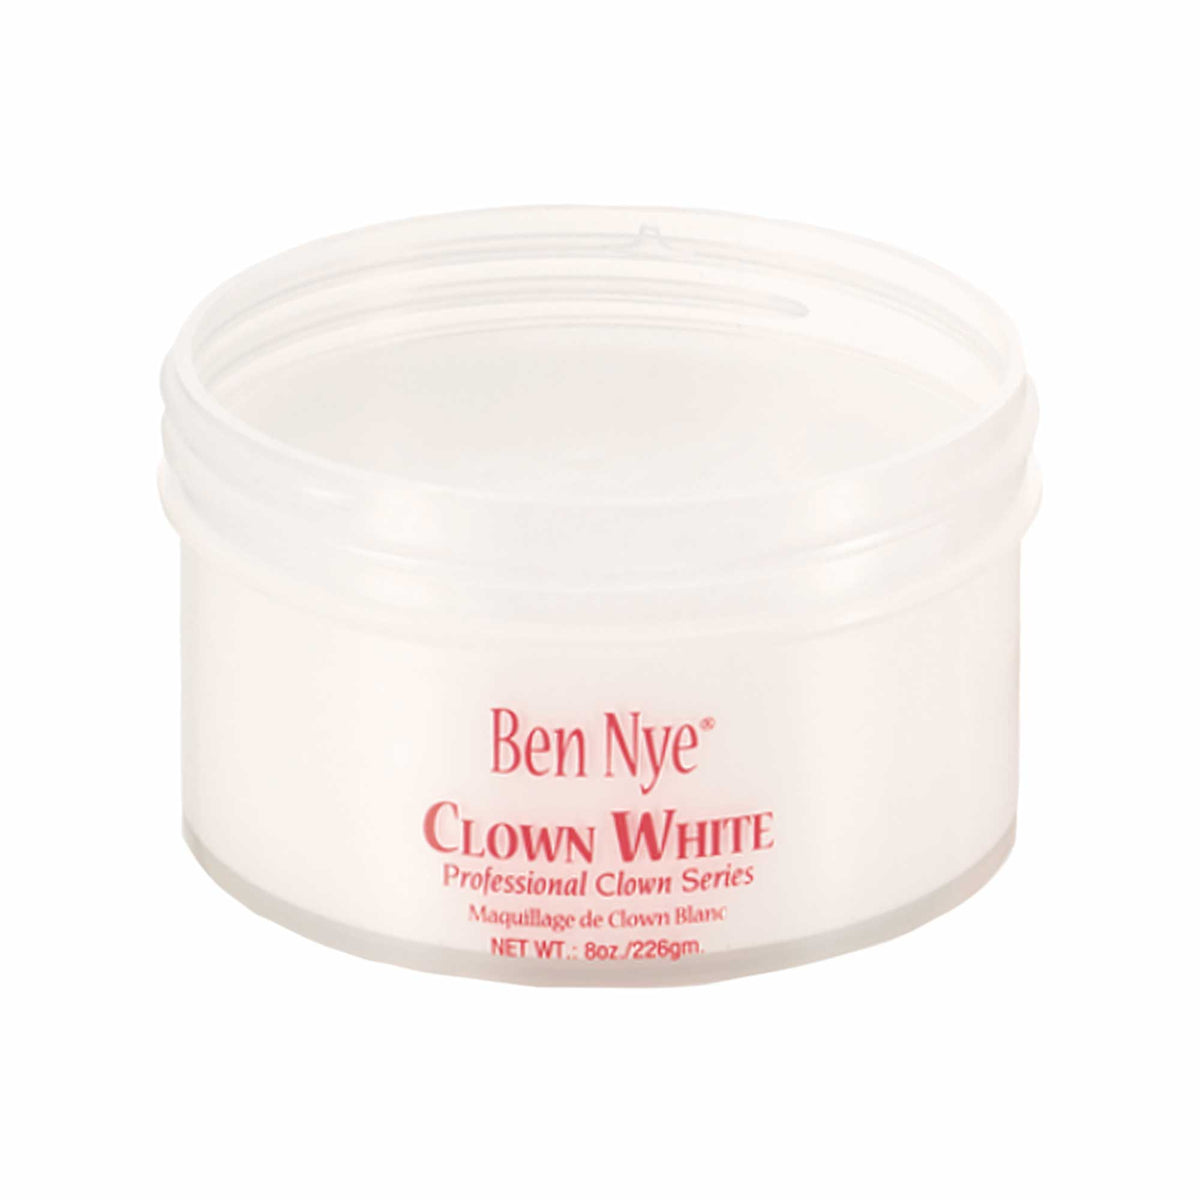 Ben Nye Clown White - High Coverage Grease Paint